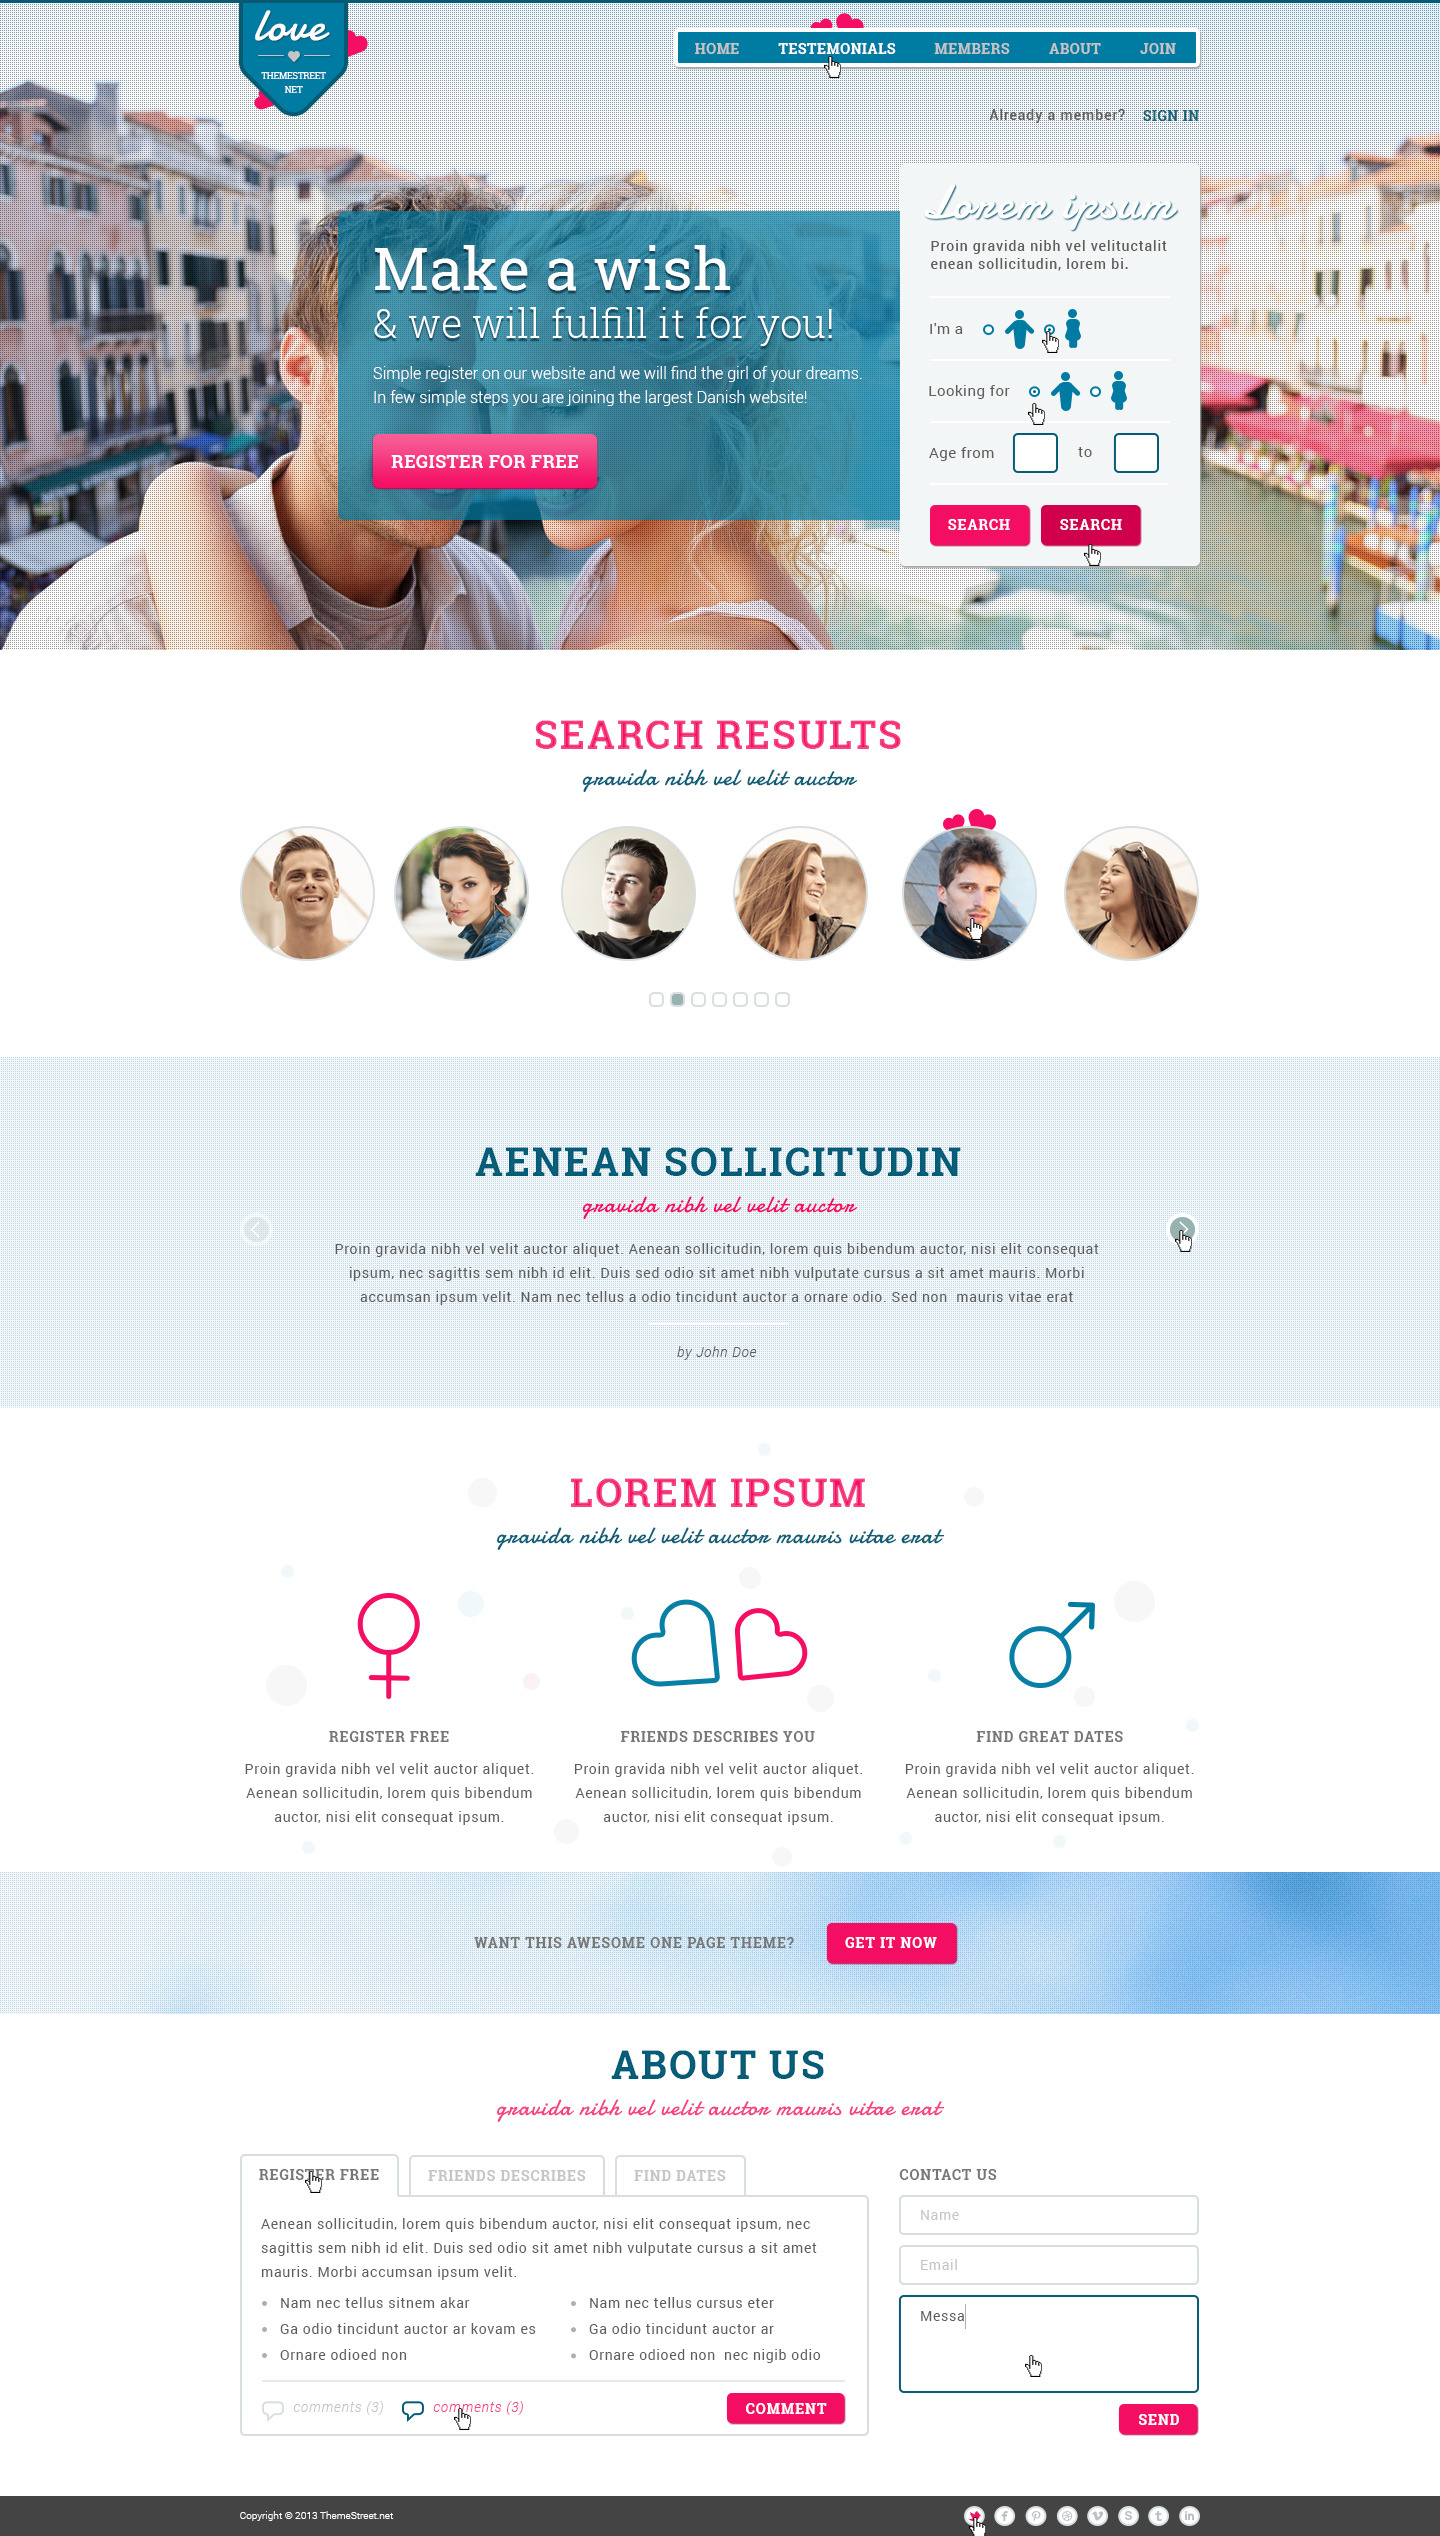 themeforest dating paradise Themeforest - zawaj v12 - dating psd template - 9728997 zawaj – dating – community – psd template, is an awesome design idea it is perfect for a dating or community website but can be use.